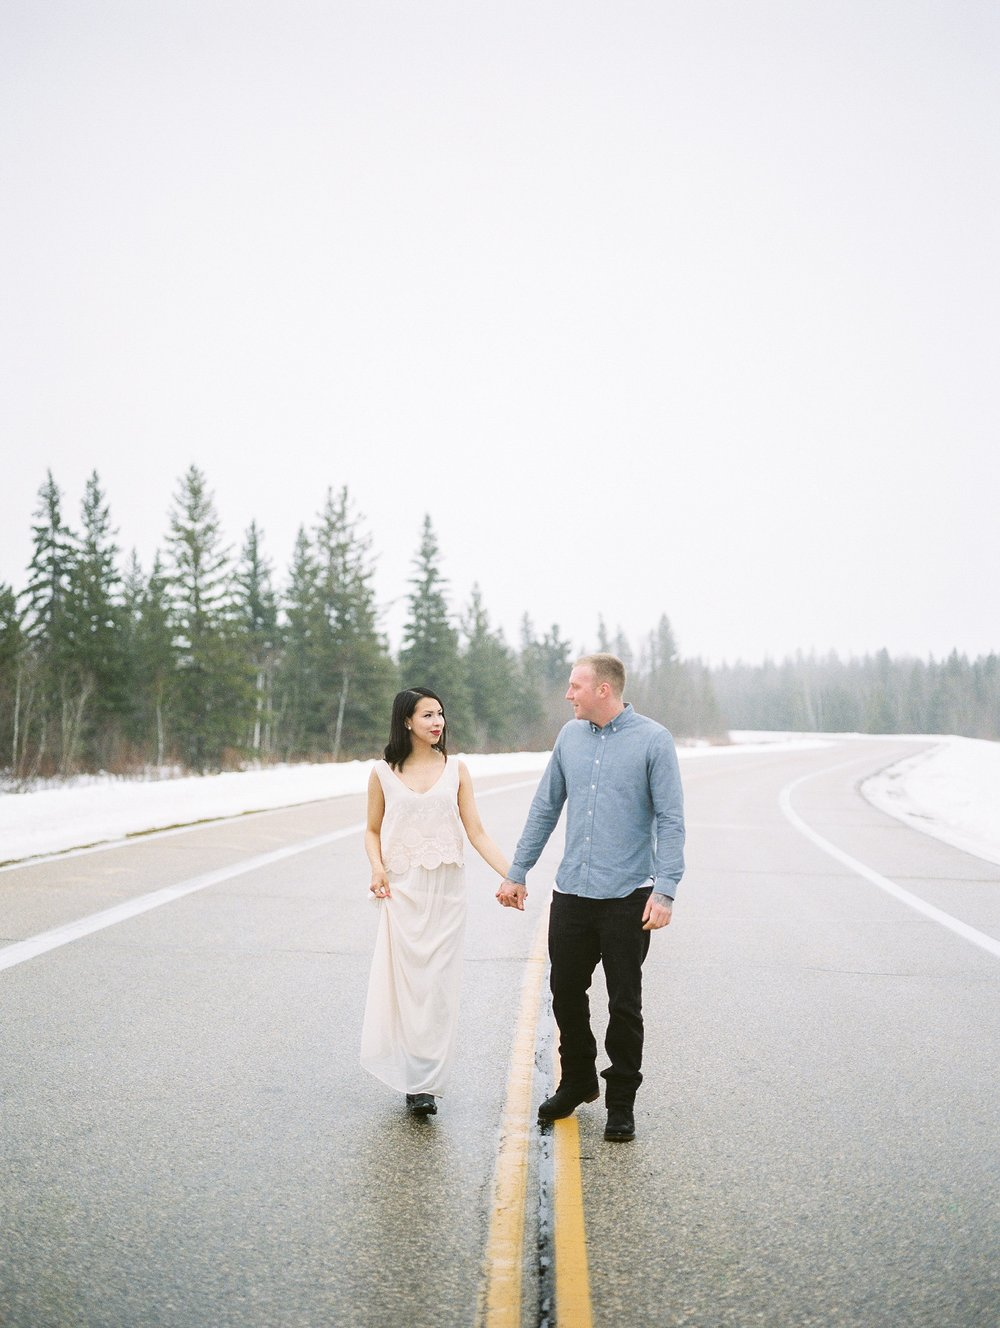 Blush dress engagement session outfit ideas | Couples with tattoos | Manitoba photographer Keila Marie Photography